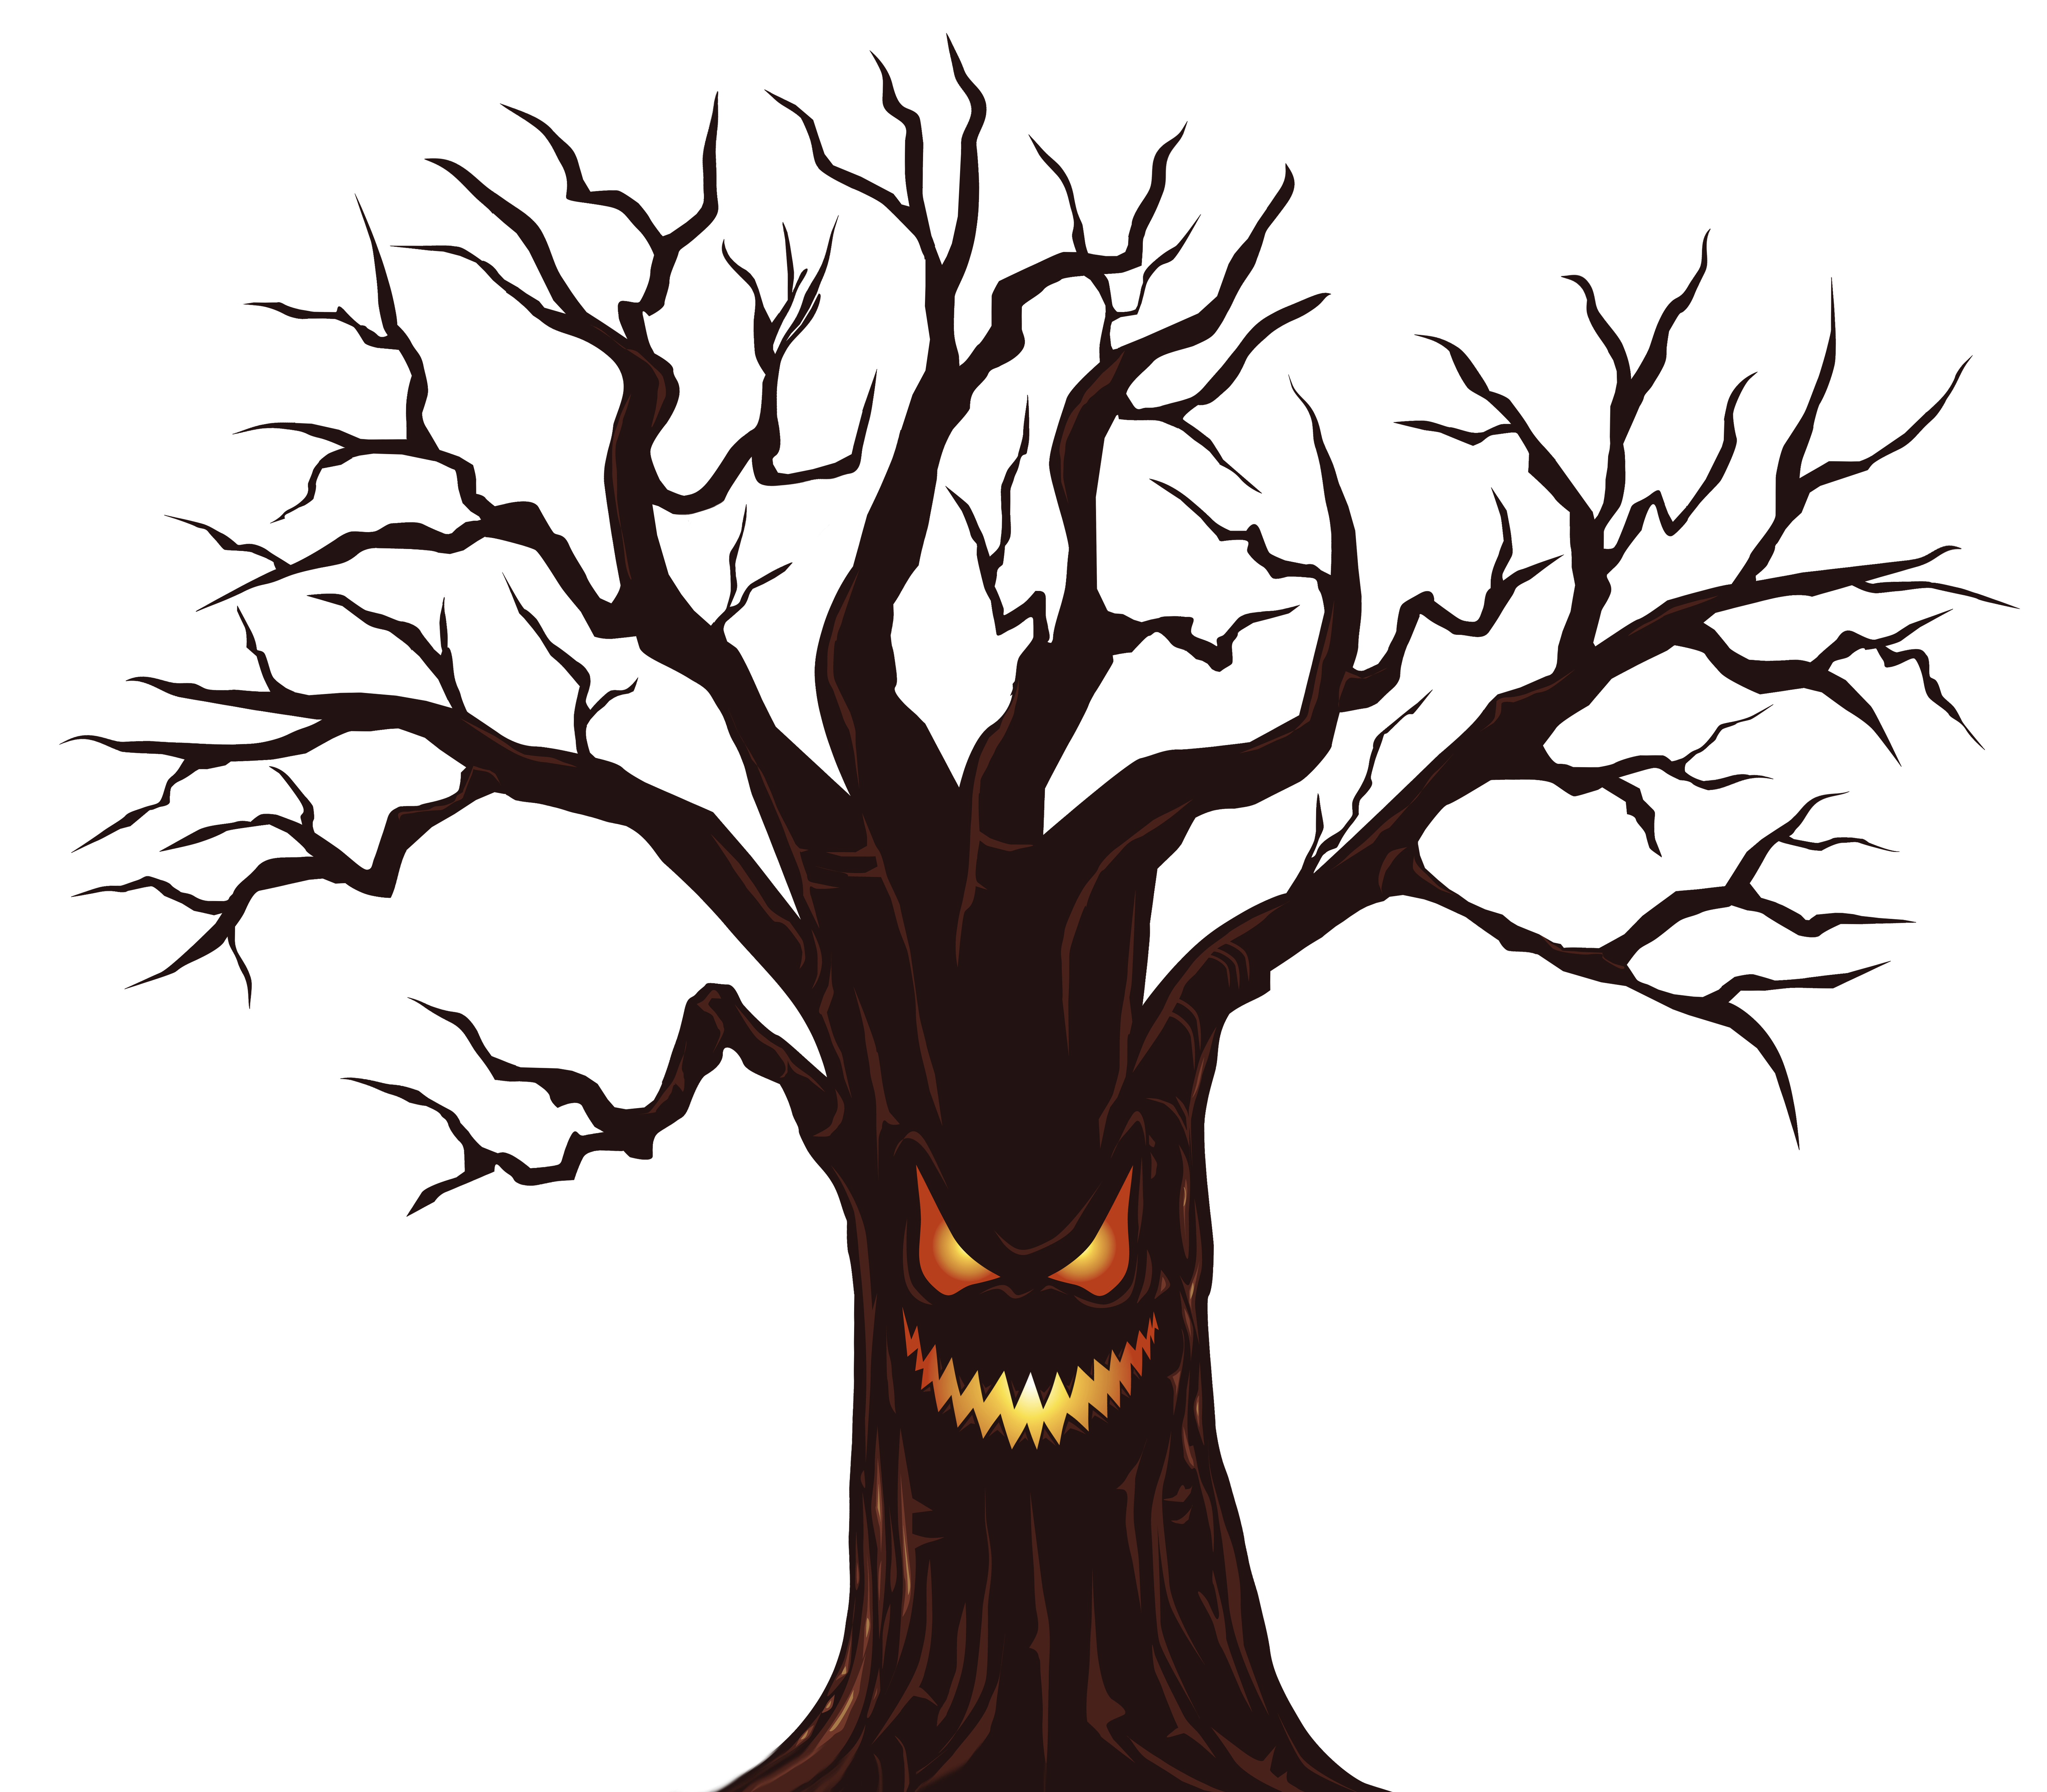 6296x5513 Halloween Spooky Tree PNG Clipart Imageu200b Gallery Yopriceville